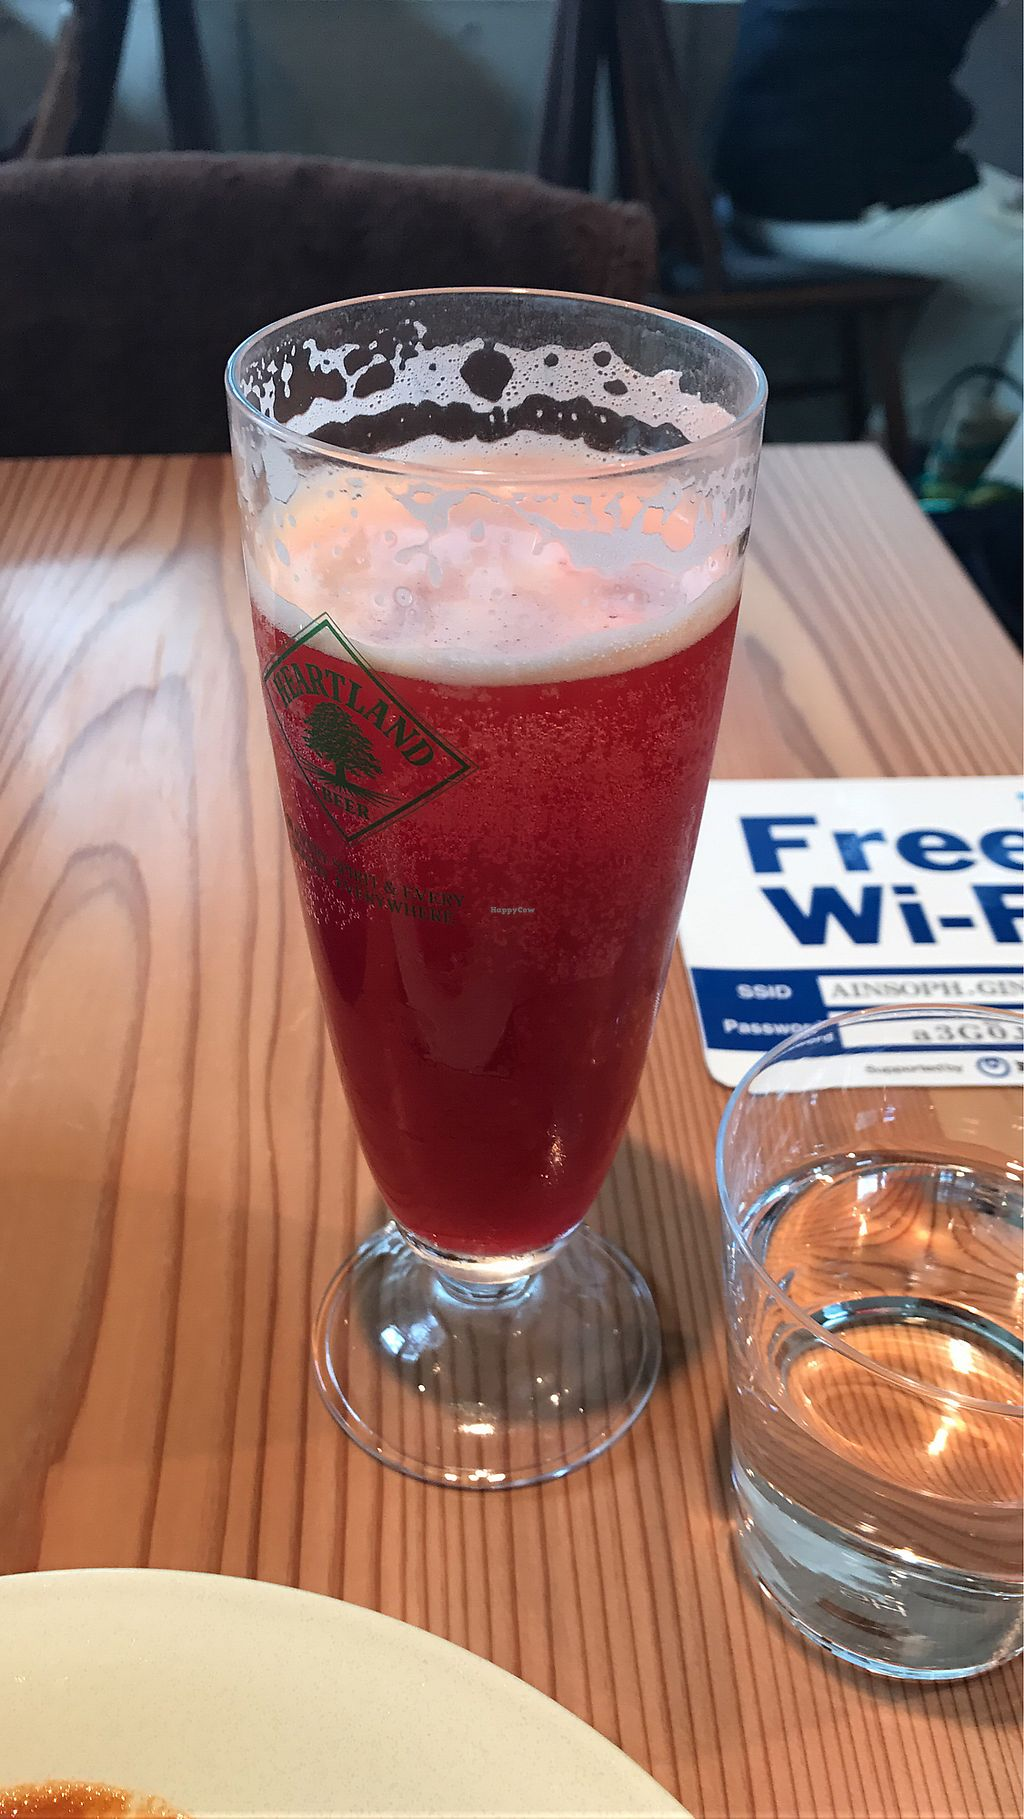 """Photo of Ain Soph.Ginza  by <a href=""""/members/profile/swiss_traveler"""">swiss_traveler</a> <br/>Cold Press Beer - Bbets, carrots, kale, chinese cabbage, cabbage, celery, seasonal citrus and apple <br/> November 1, 2017  - <a href='/contact/abuse/image/23681/320682'>Report</a>"""